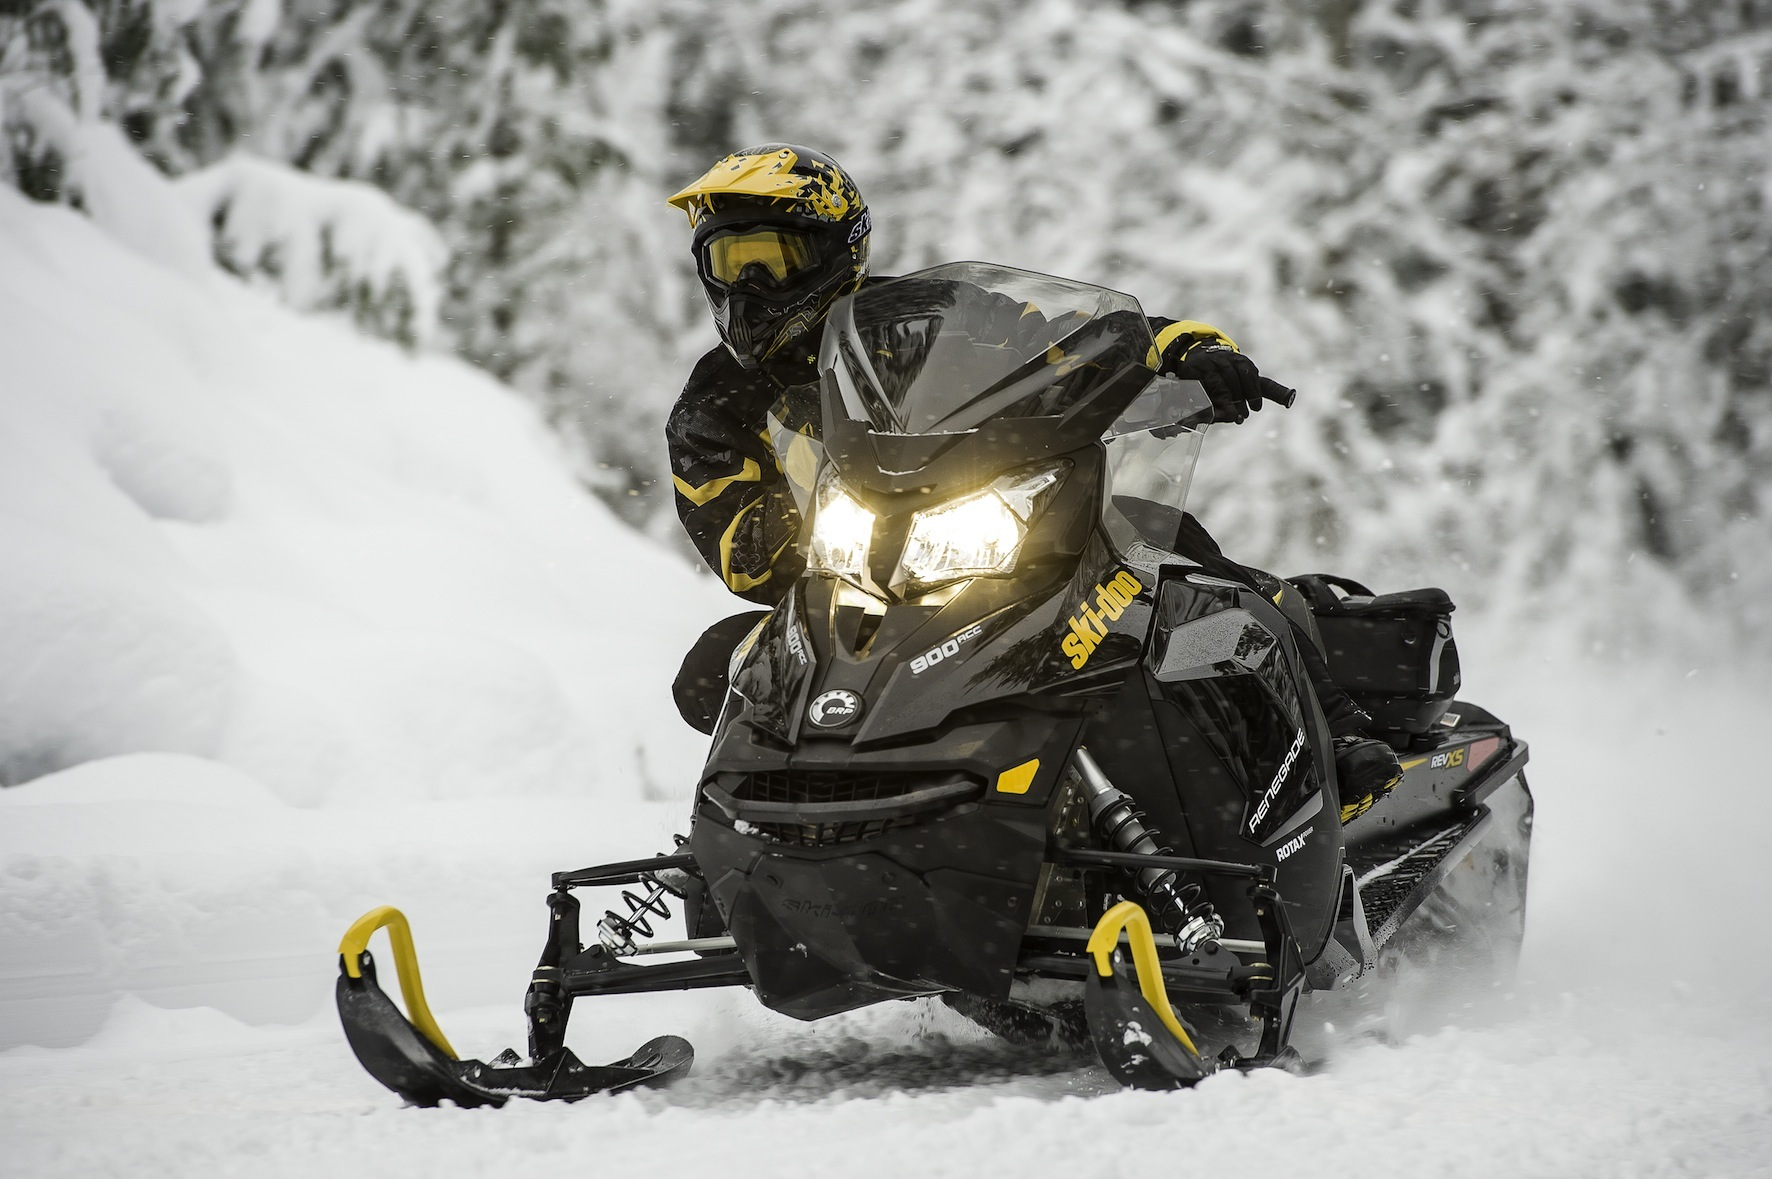 2014 Ski-Doo Renegade Adrenalin 900 ACE Snowmobile